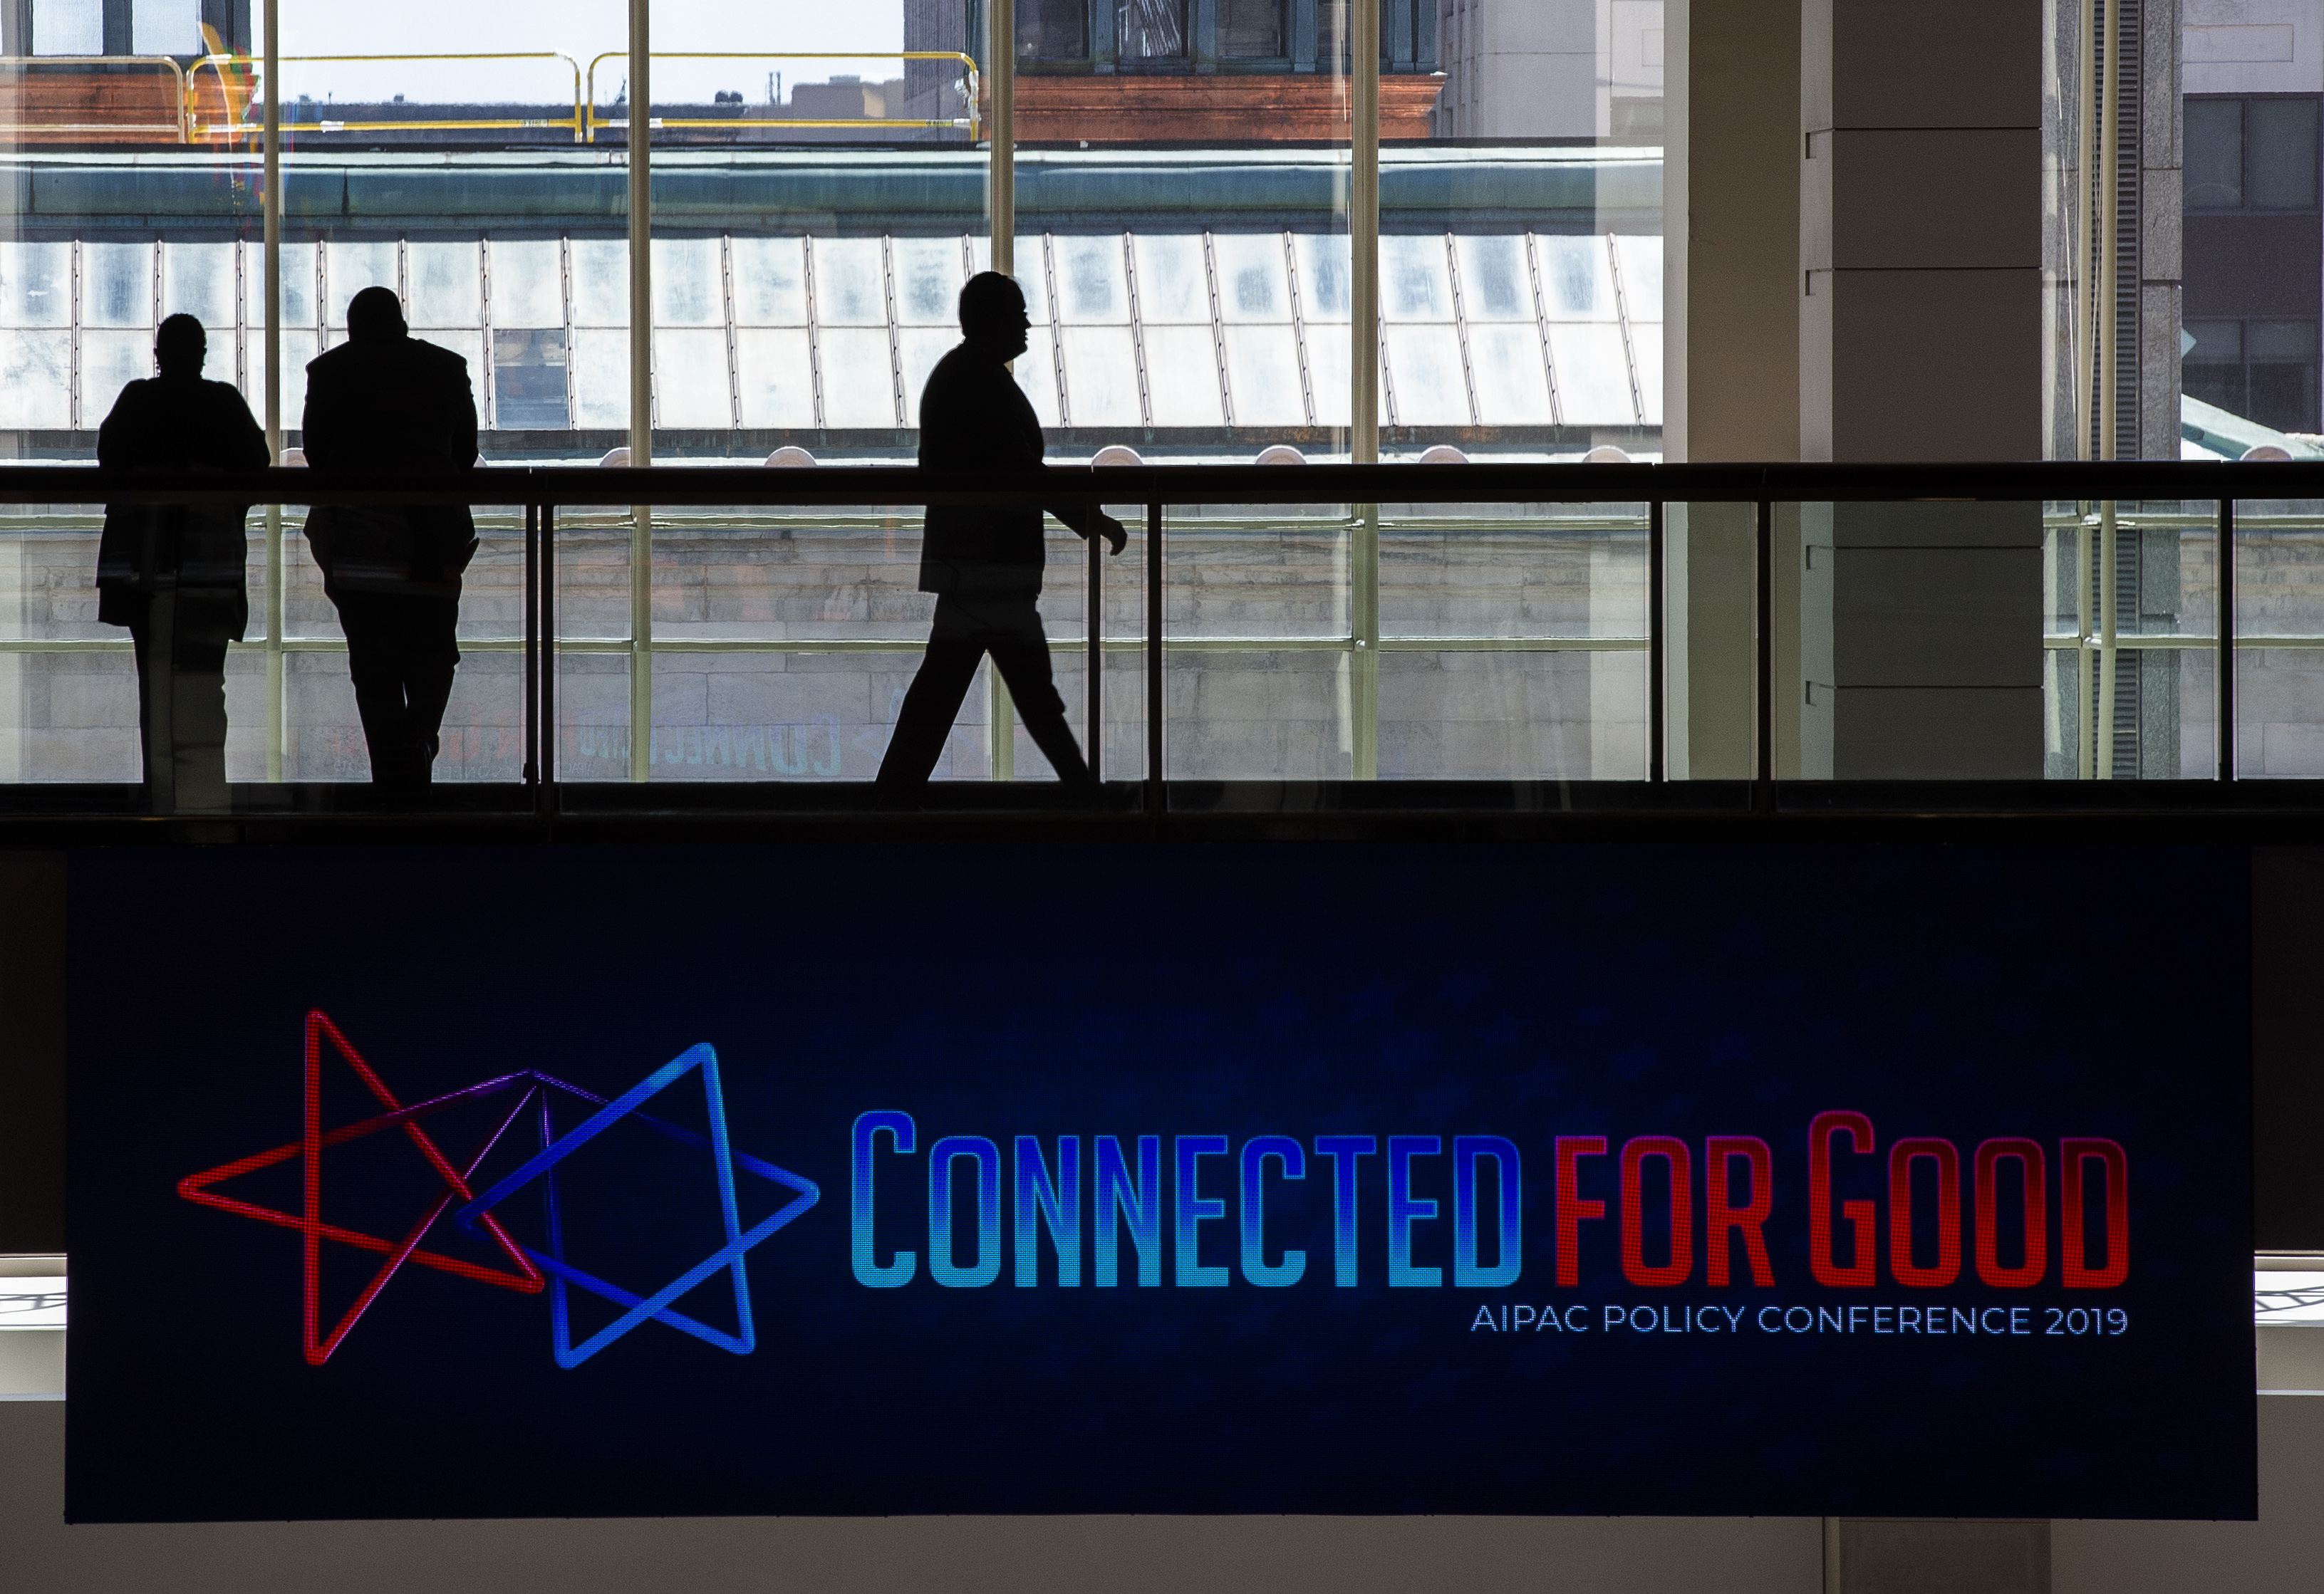 People attend the American Israel Public Affairs Committee (AIPAC) conference in Washington, DC on March 24, 2019. (Andrew Caballero-Reynolds/AFP/Getty Images)